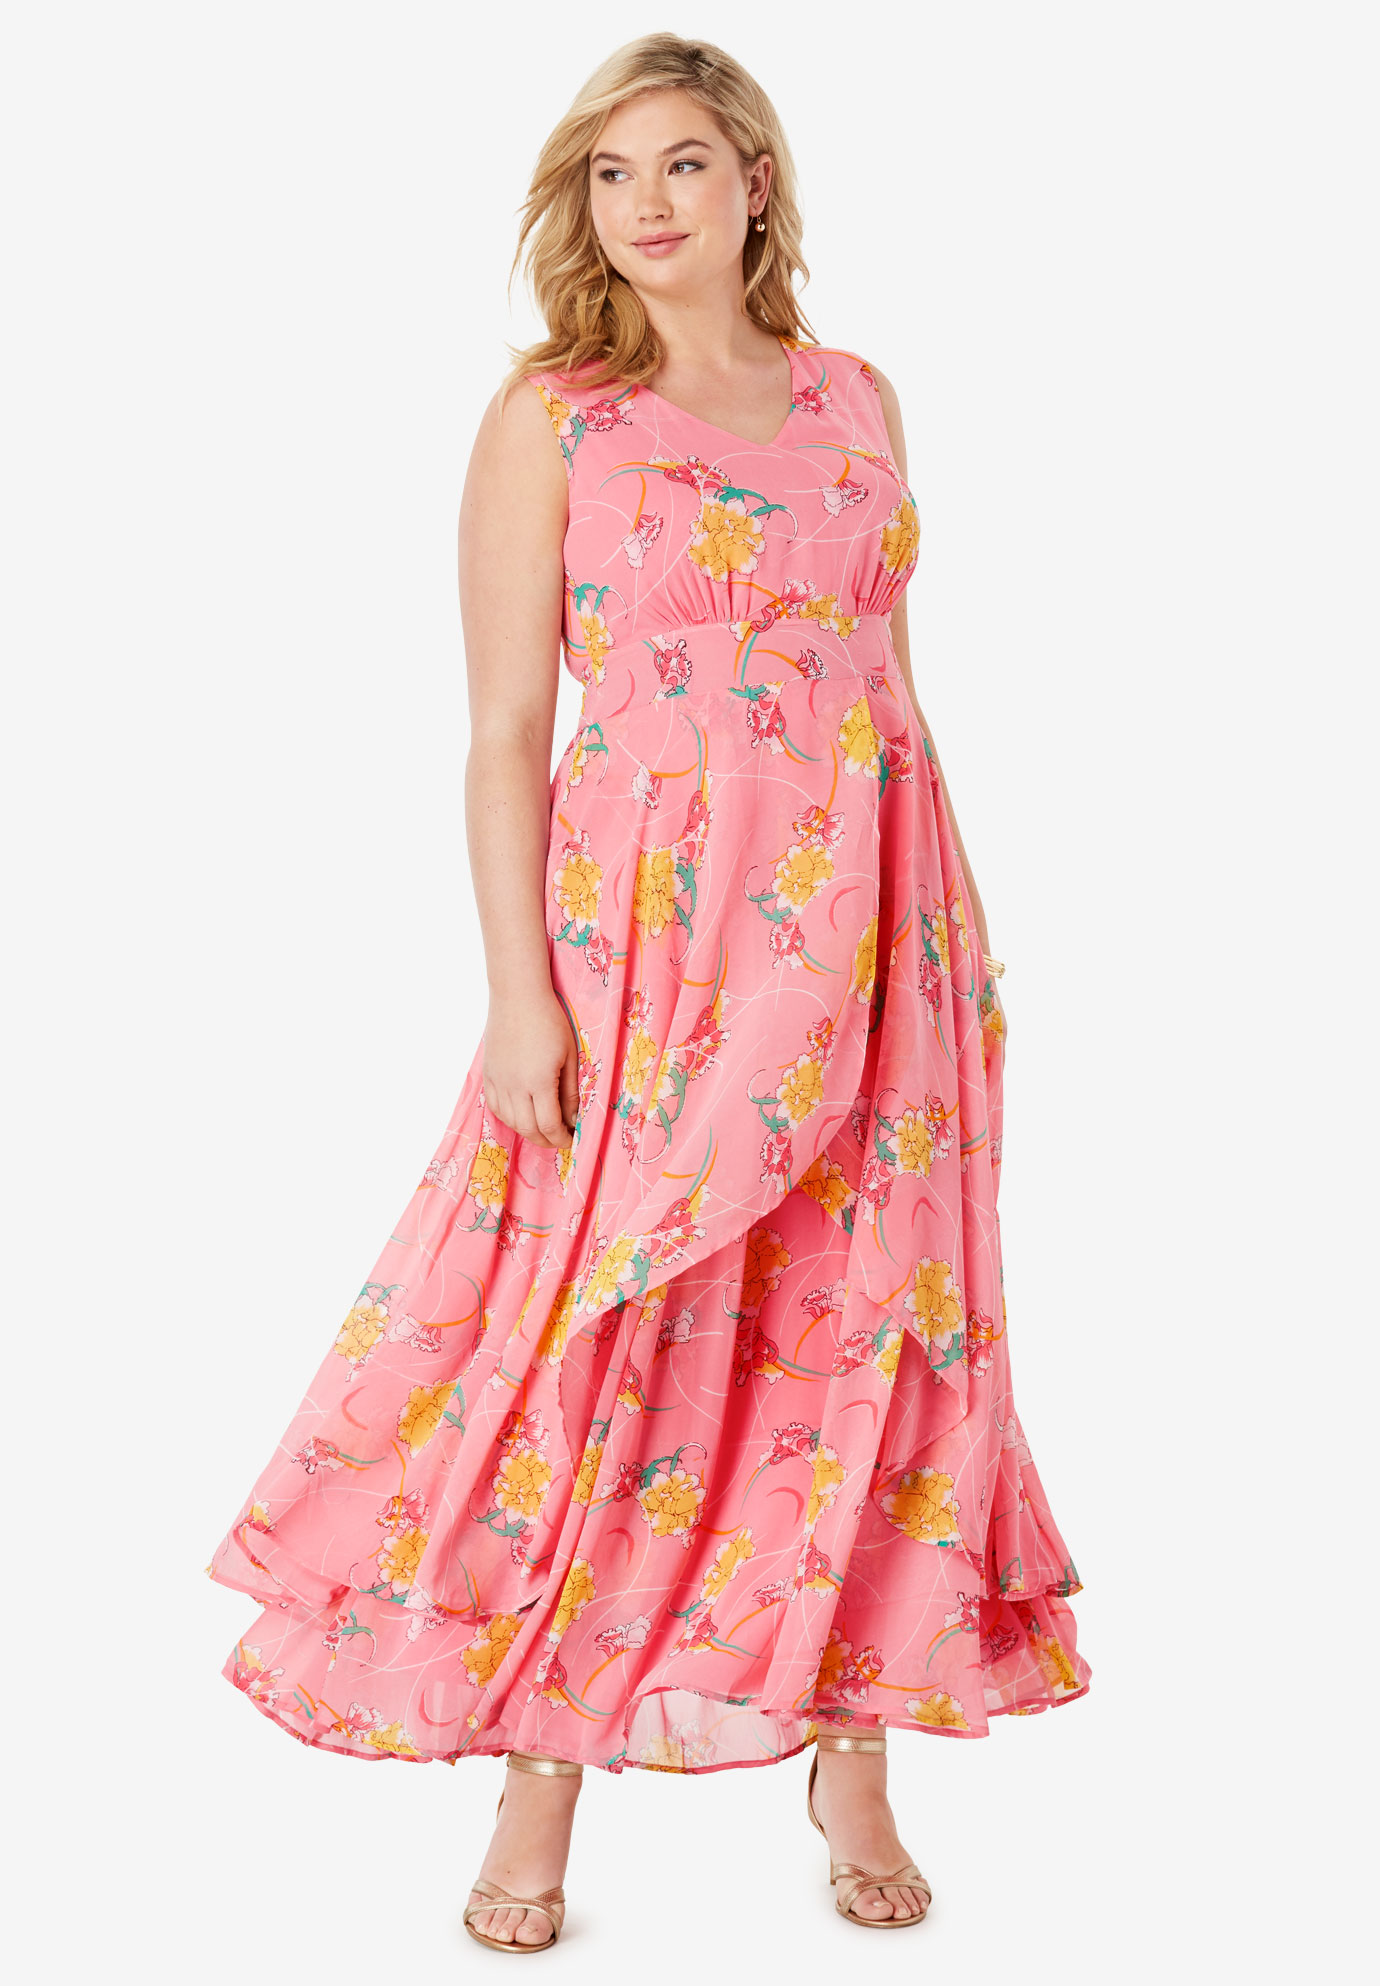 Maxi Dresses A Perfect Choice For All Type of Body Shapes | StylesWardrobe.com